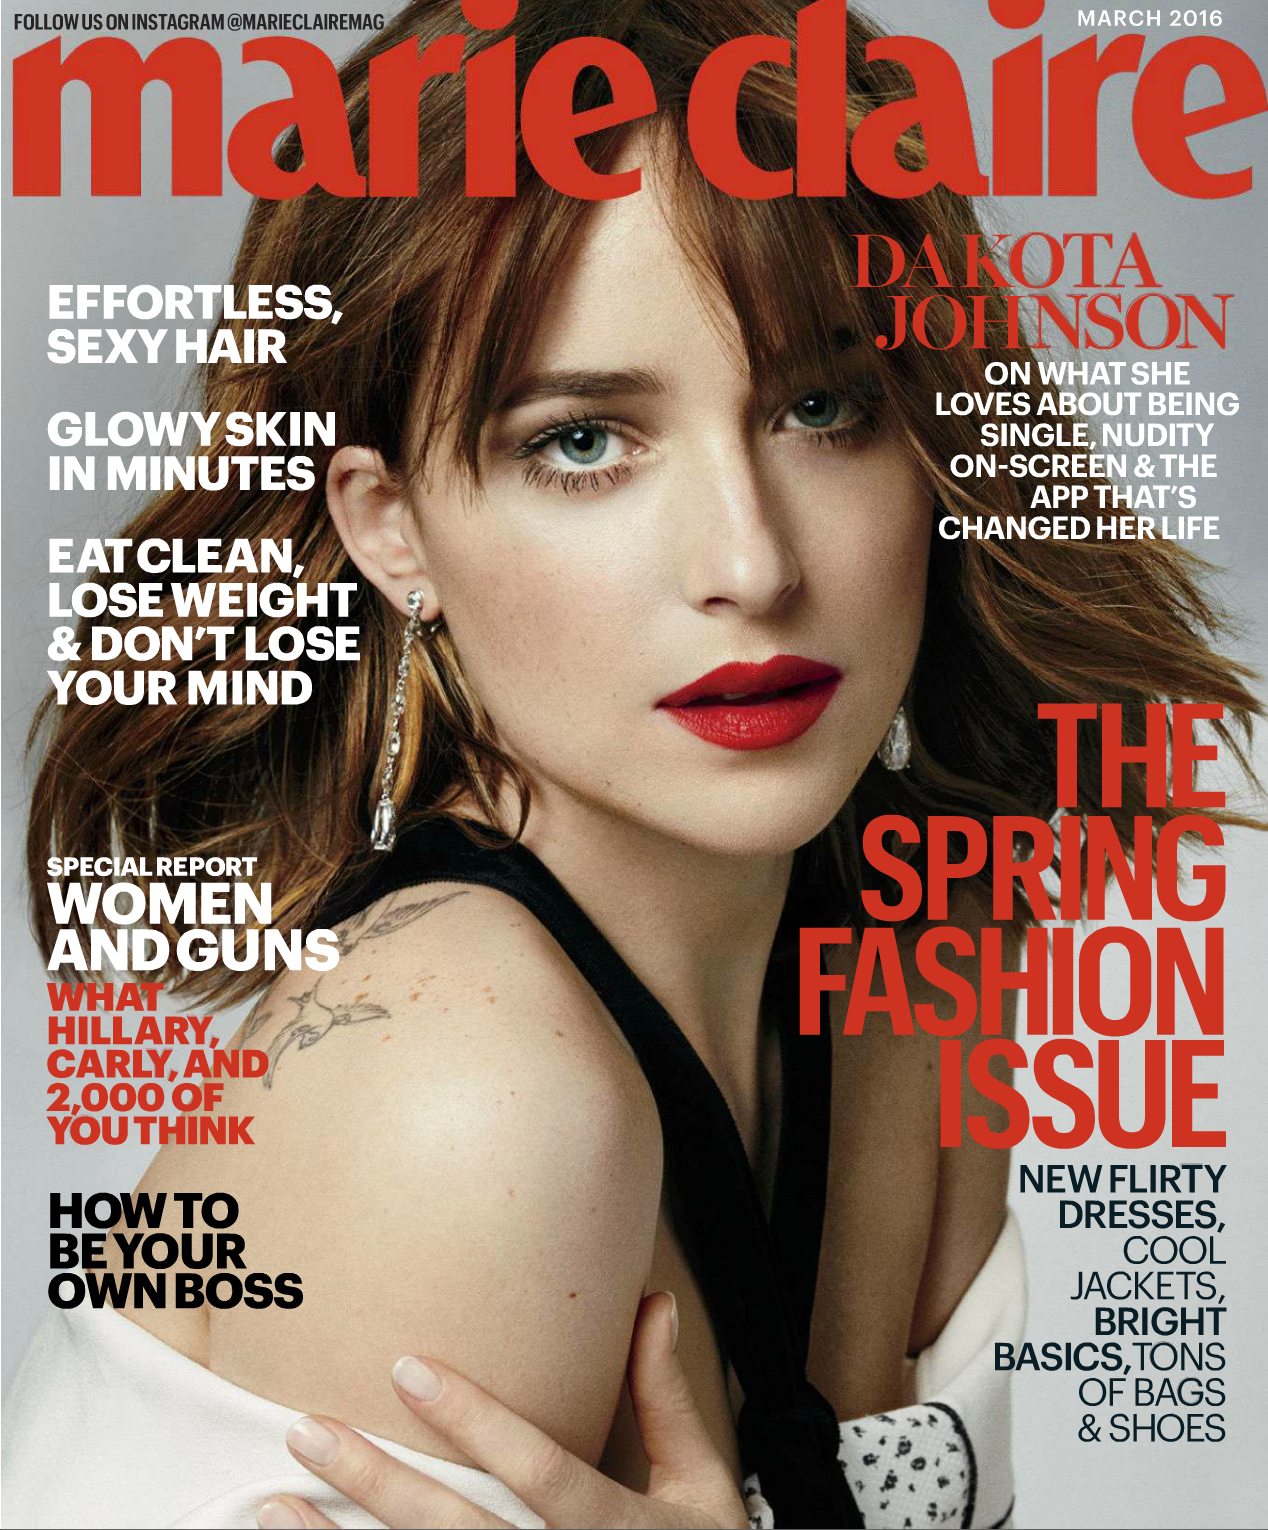 marie-claire-march-2016-renee-lusano-wrenee-drone1.png